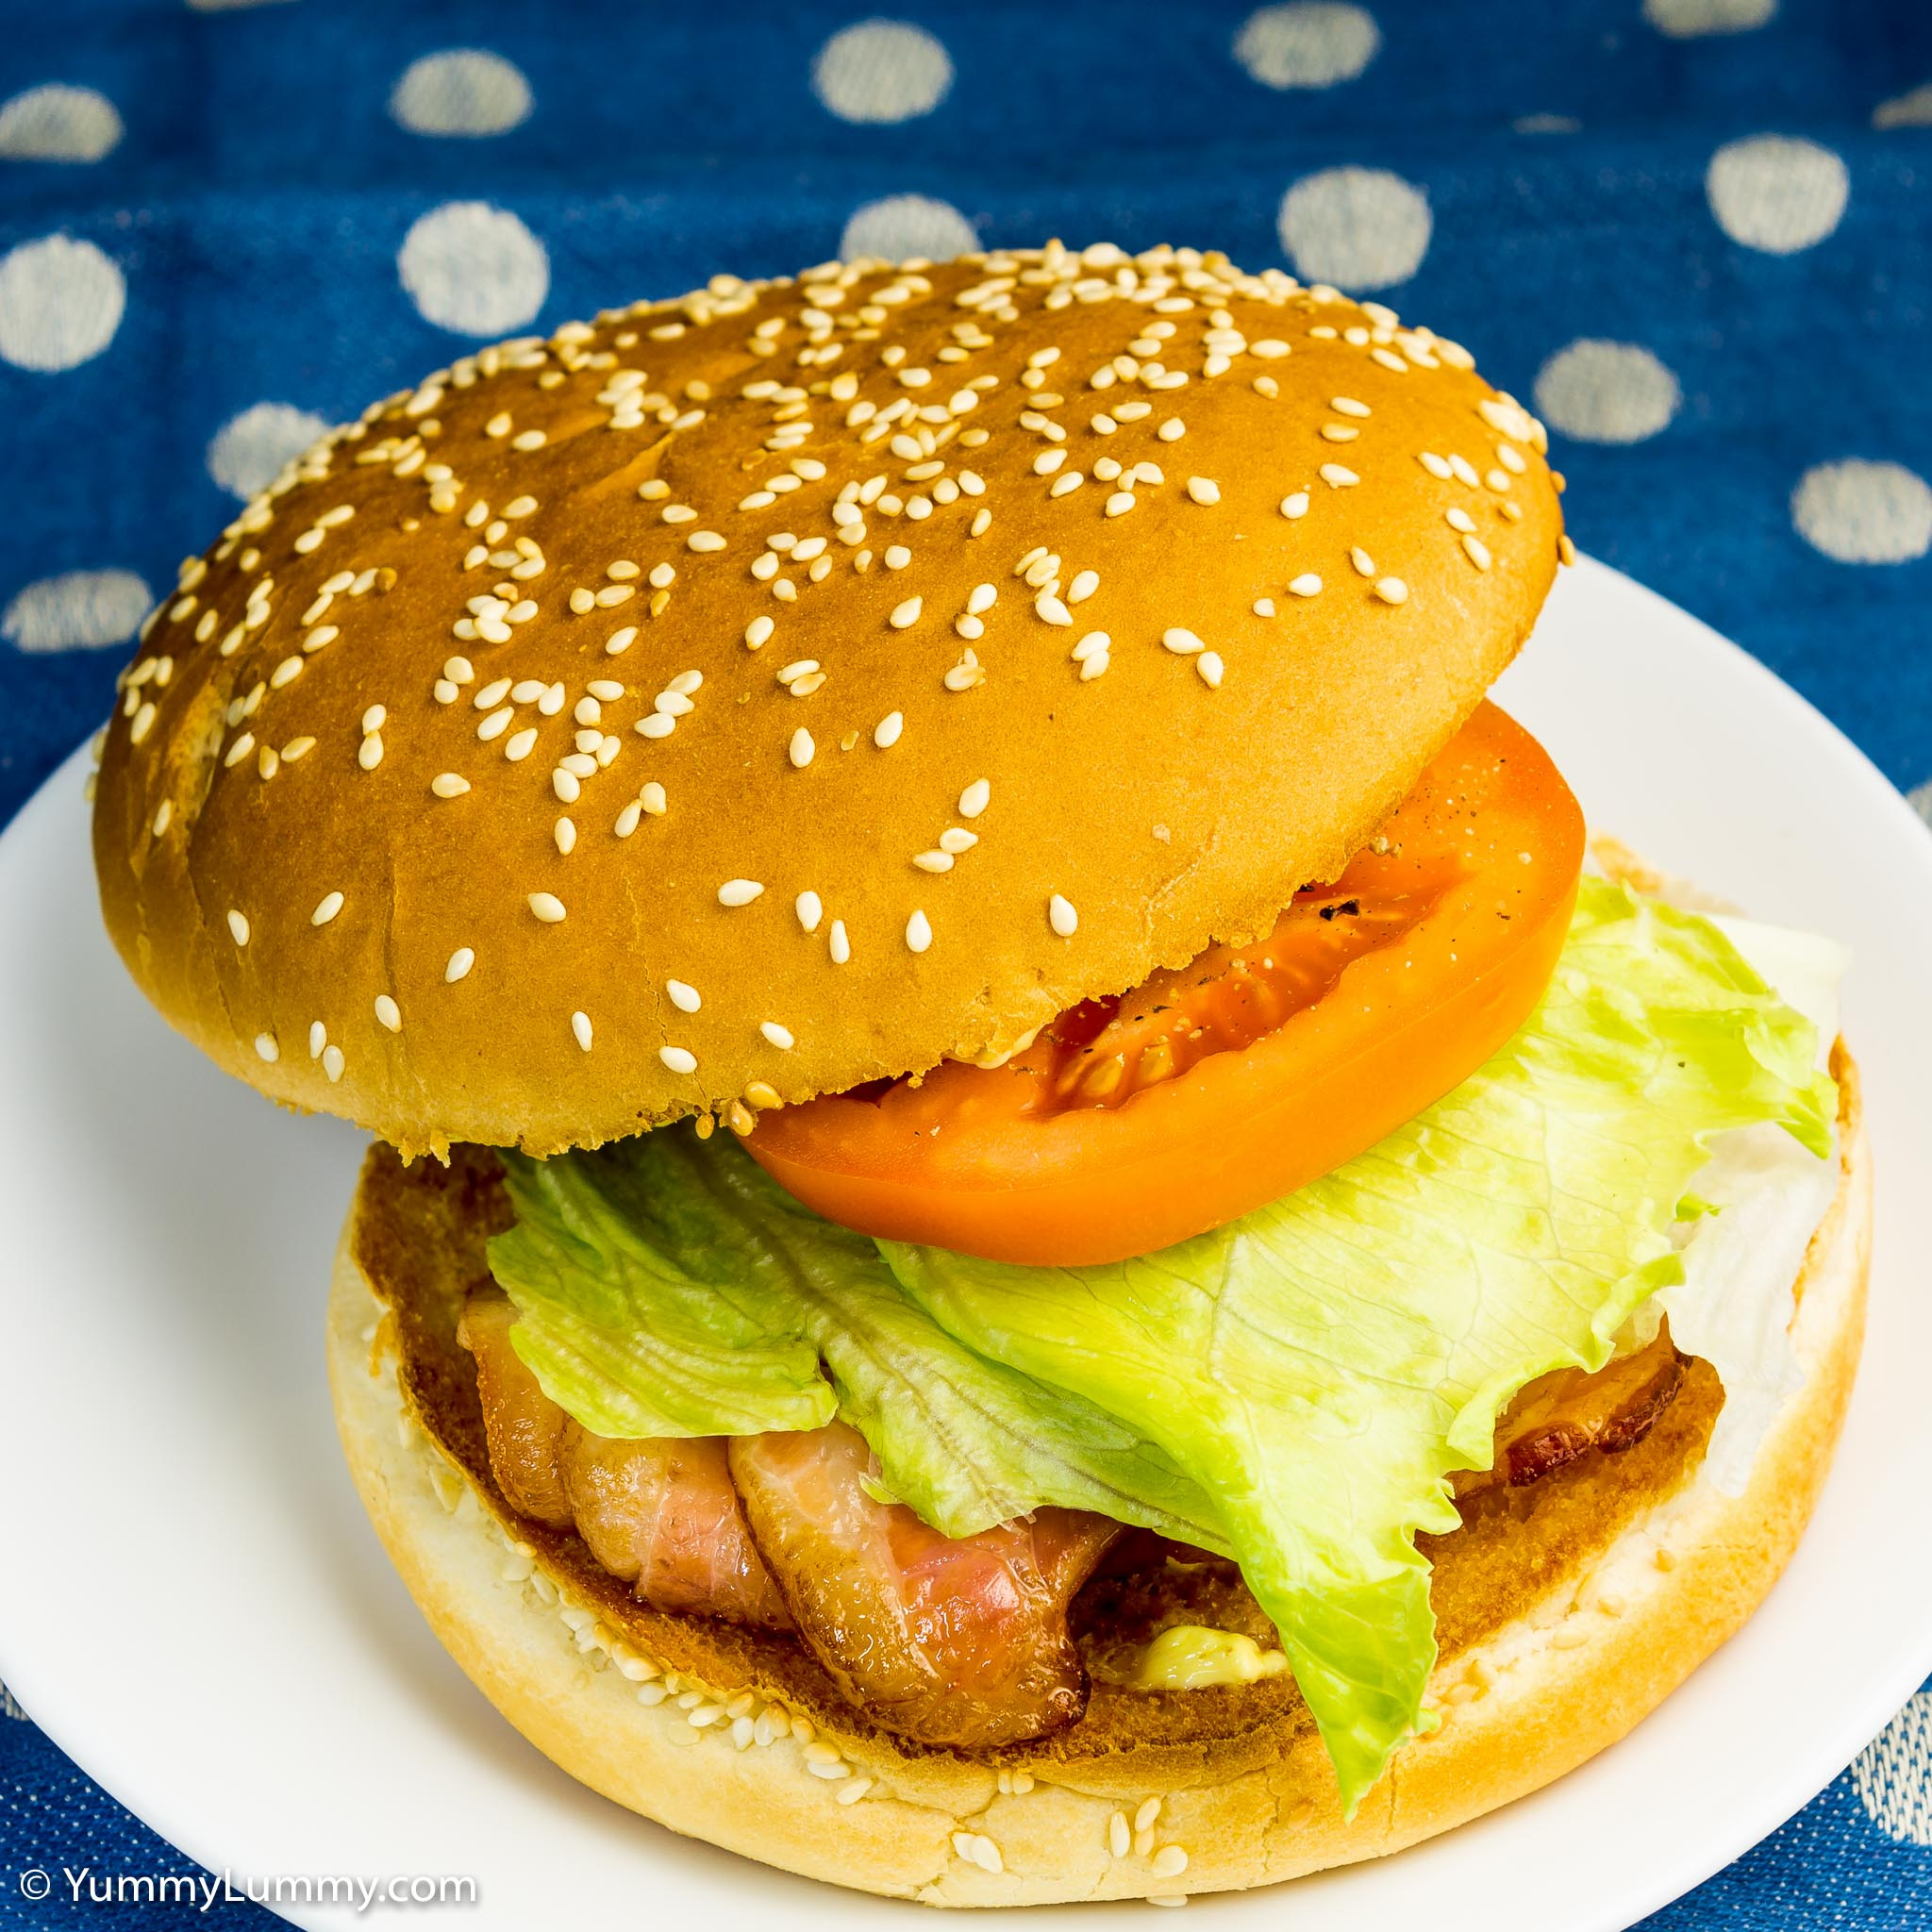 My BLT | Bacon Lettuce and tomato sandwich | NIKON D7100 with 24.0-70.0 mm f/2.8 at 42mm and f/5.6, 1/50sec, ISO 100